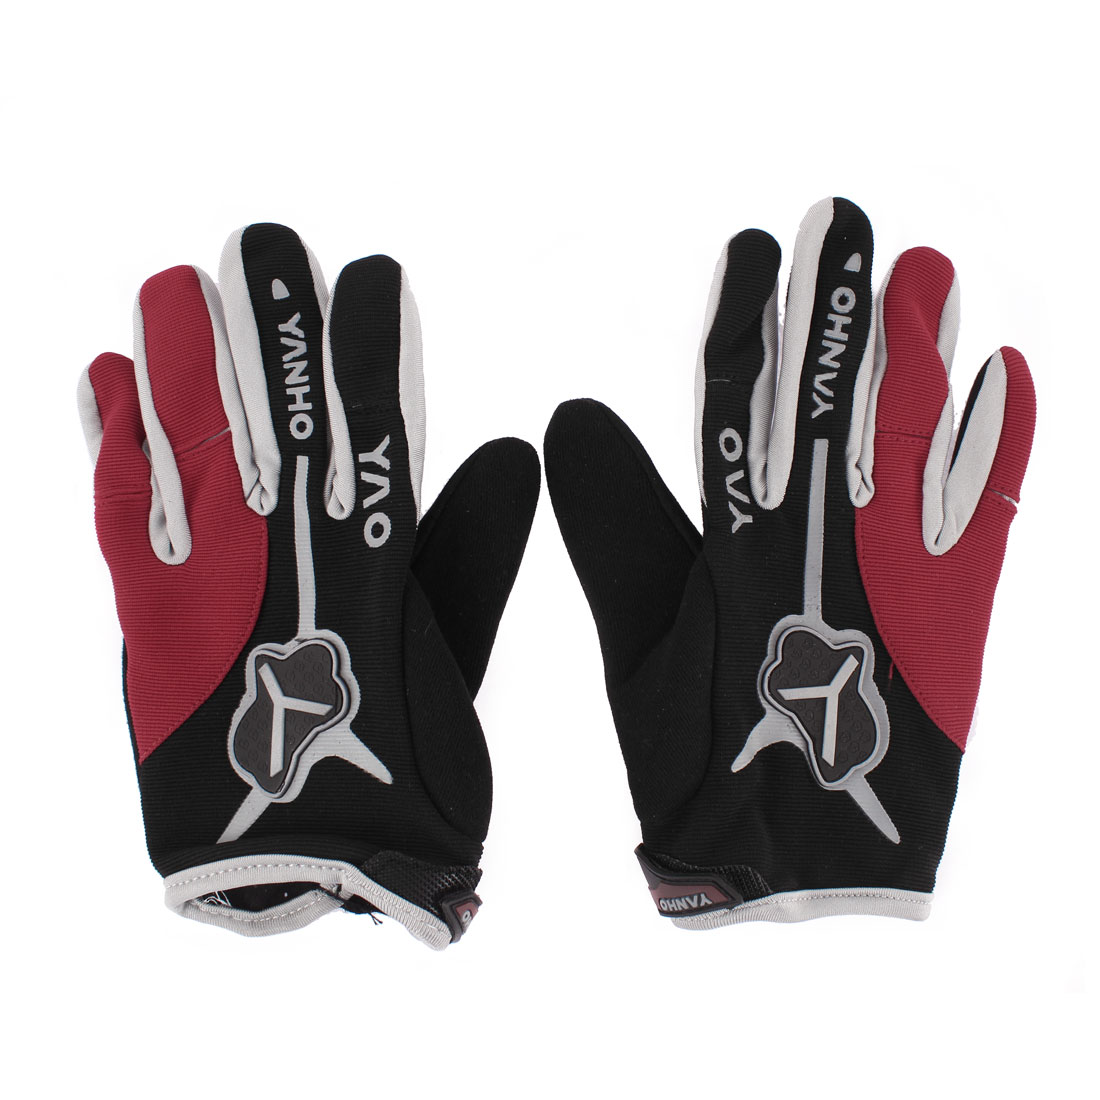 Men Bike Bicycle Cycling Full Ginger Gym Gloves Hand Protector Pair